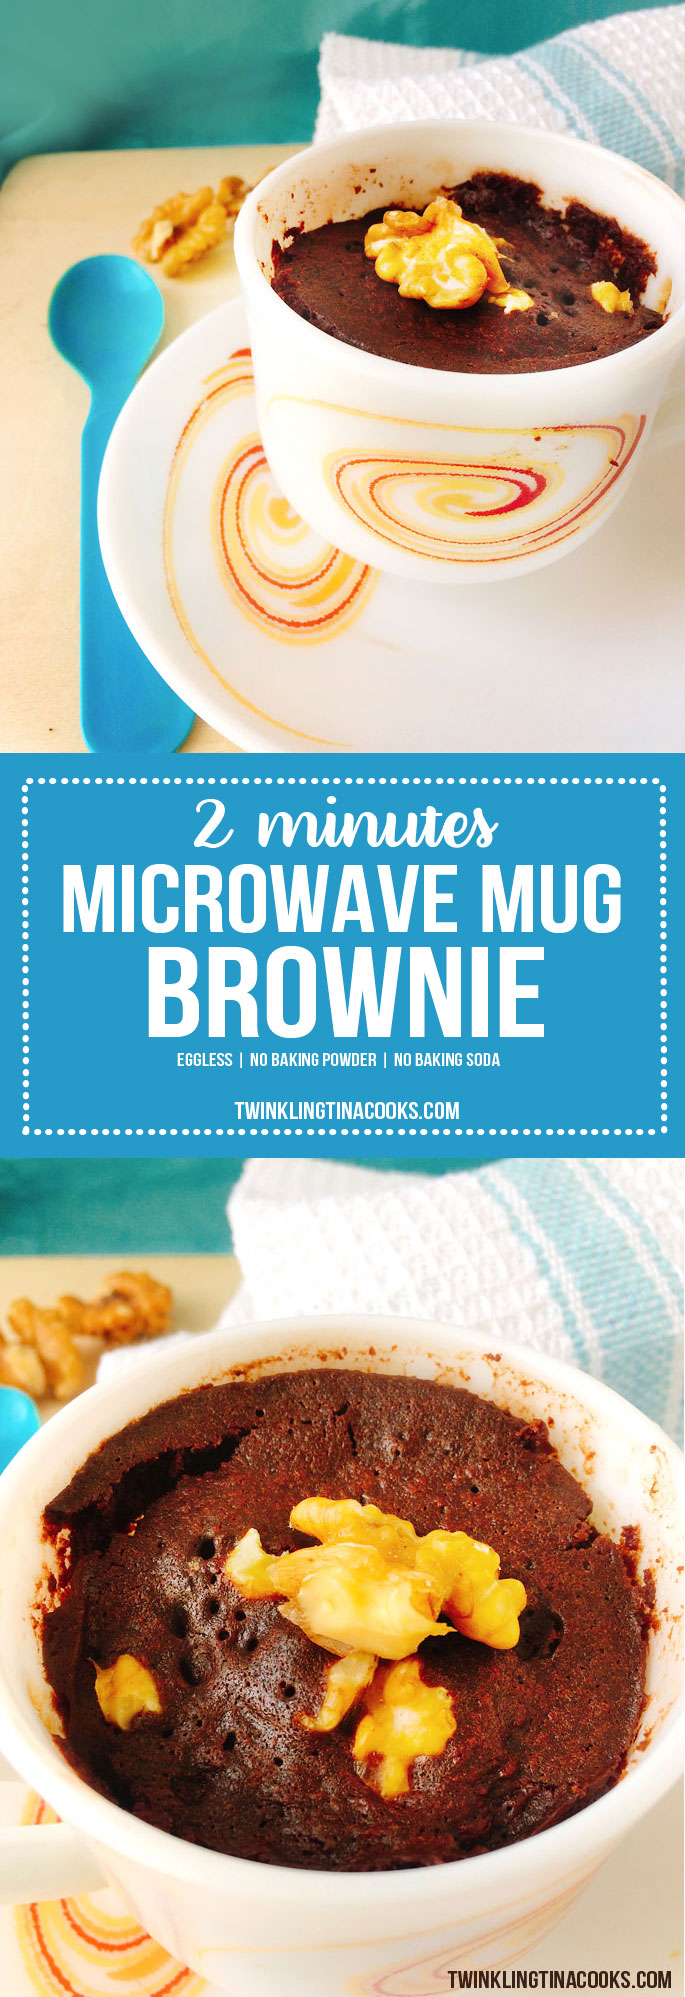 instant-2-minute-microwave-mug-brownie-recipe